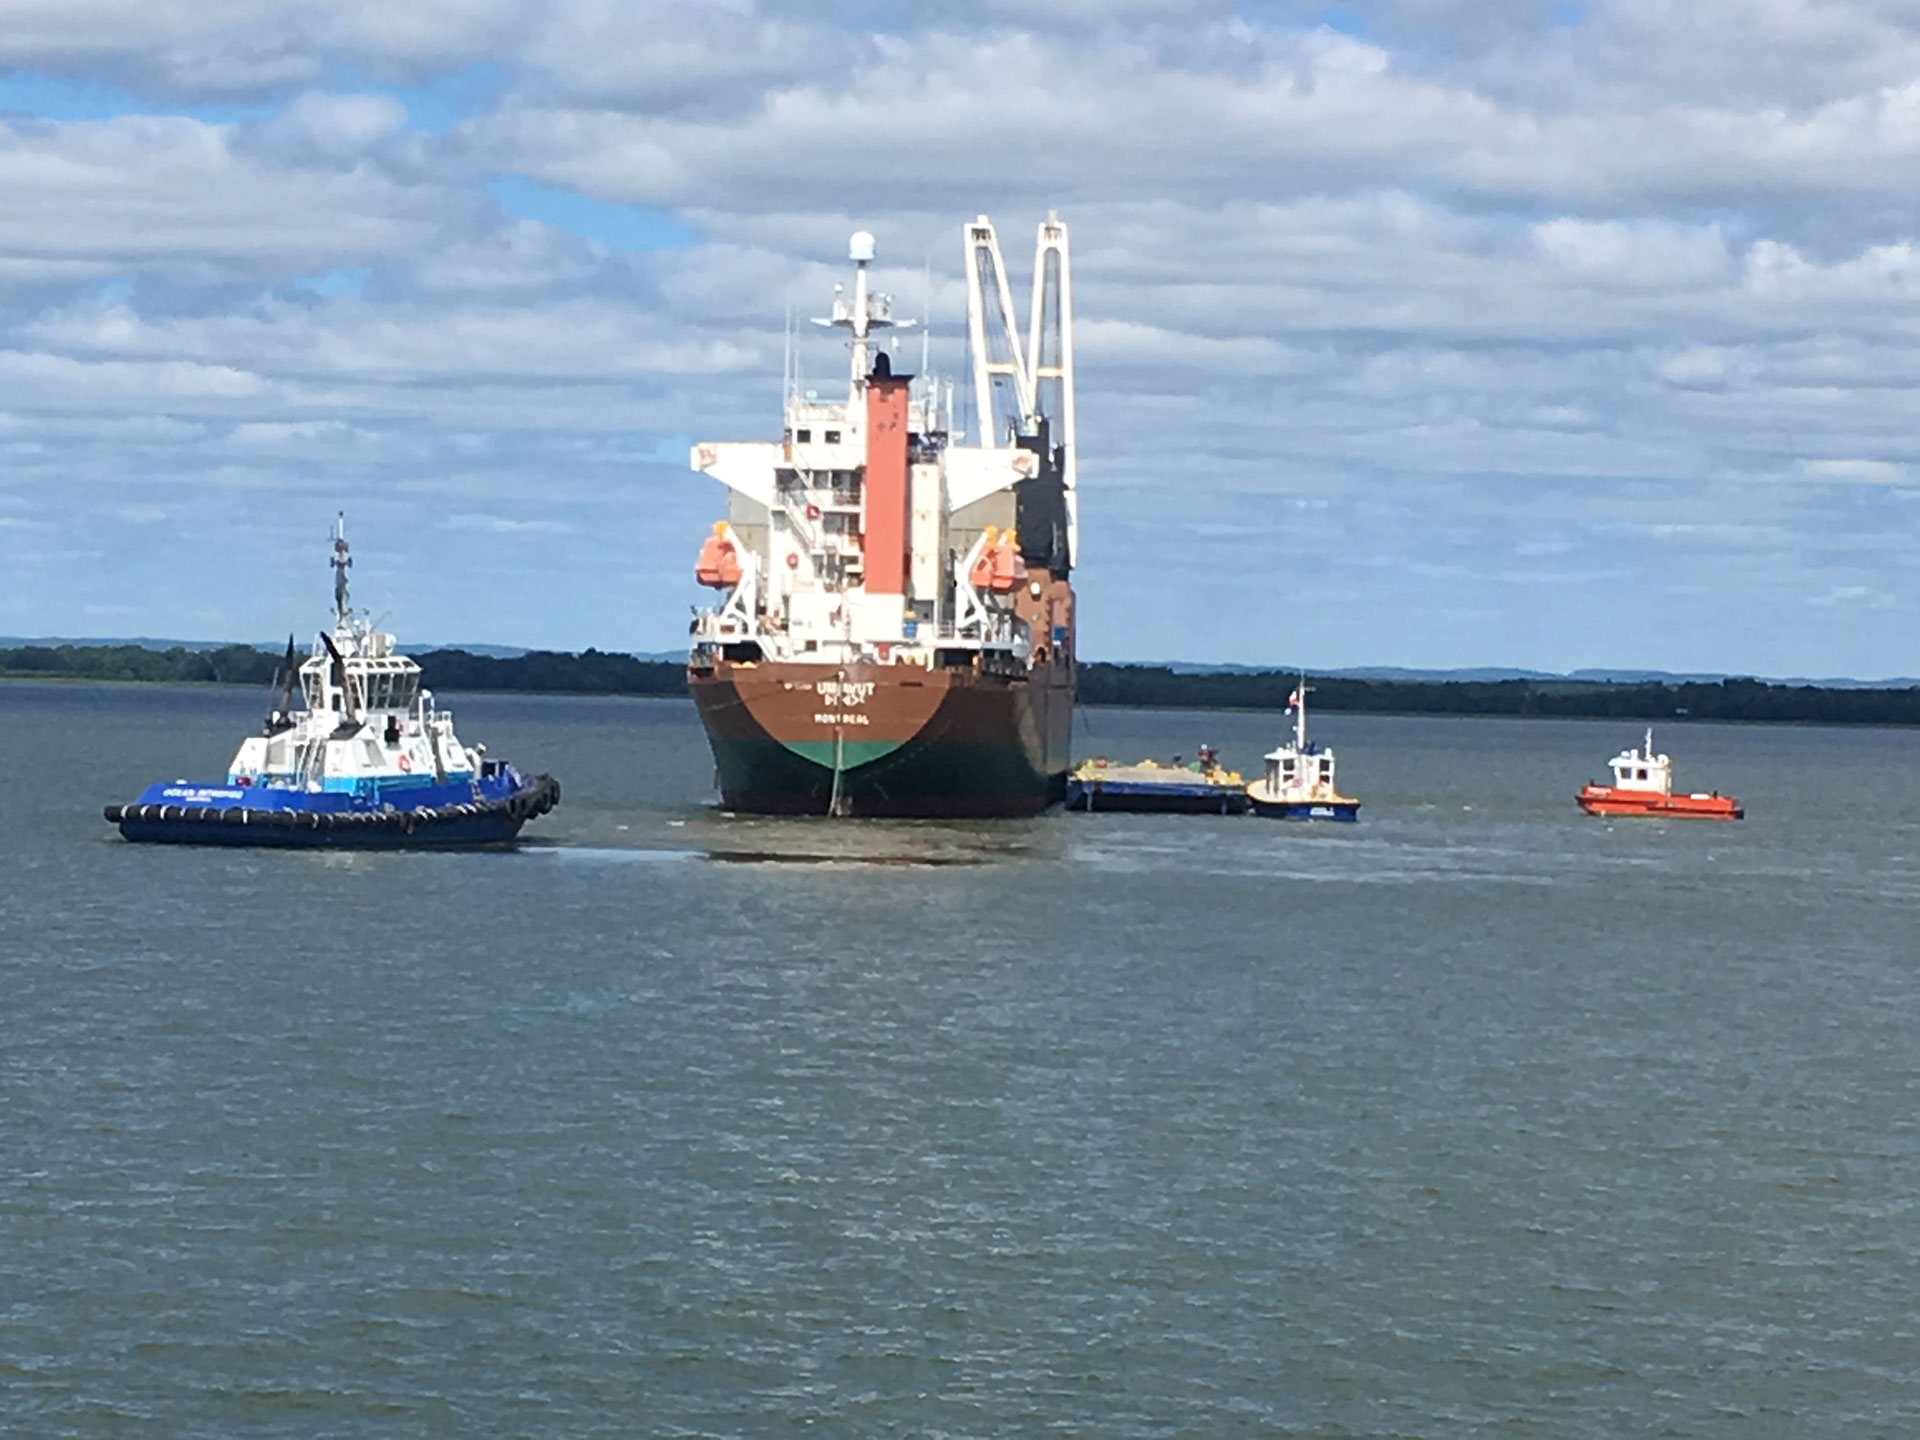 Ocean marine salvage to the rescue of the vessel Umiavut